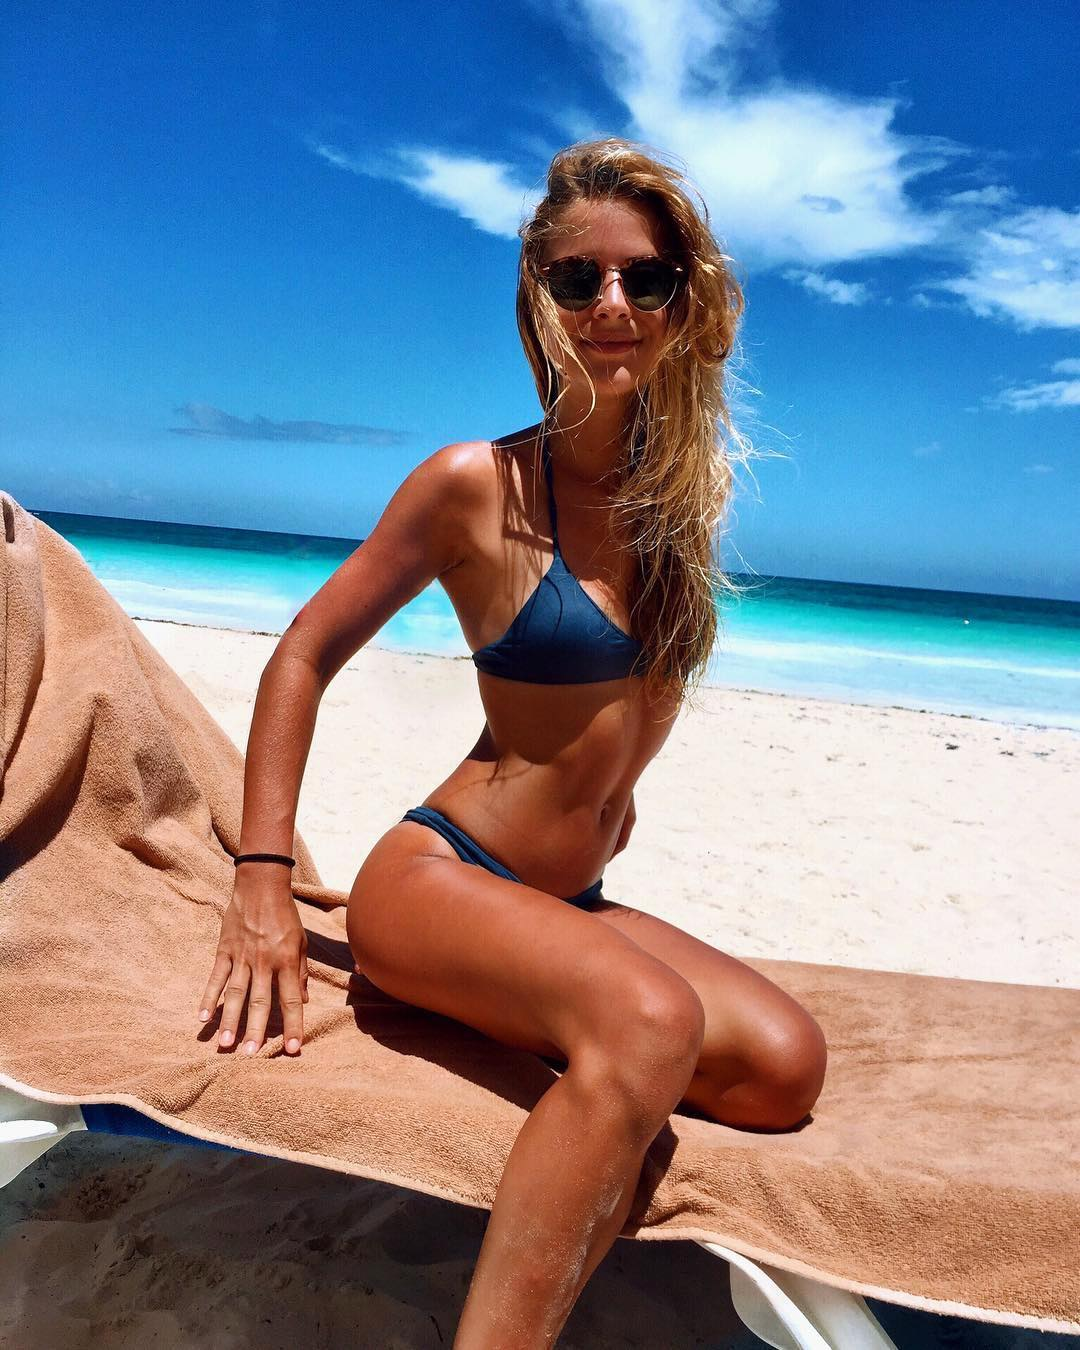 Alexis wearing the Saltish Bikini Top and Ripped Bikini Bottom in Top Blue